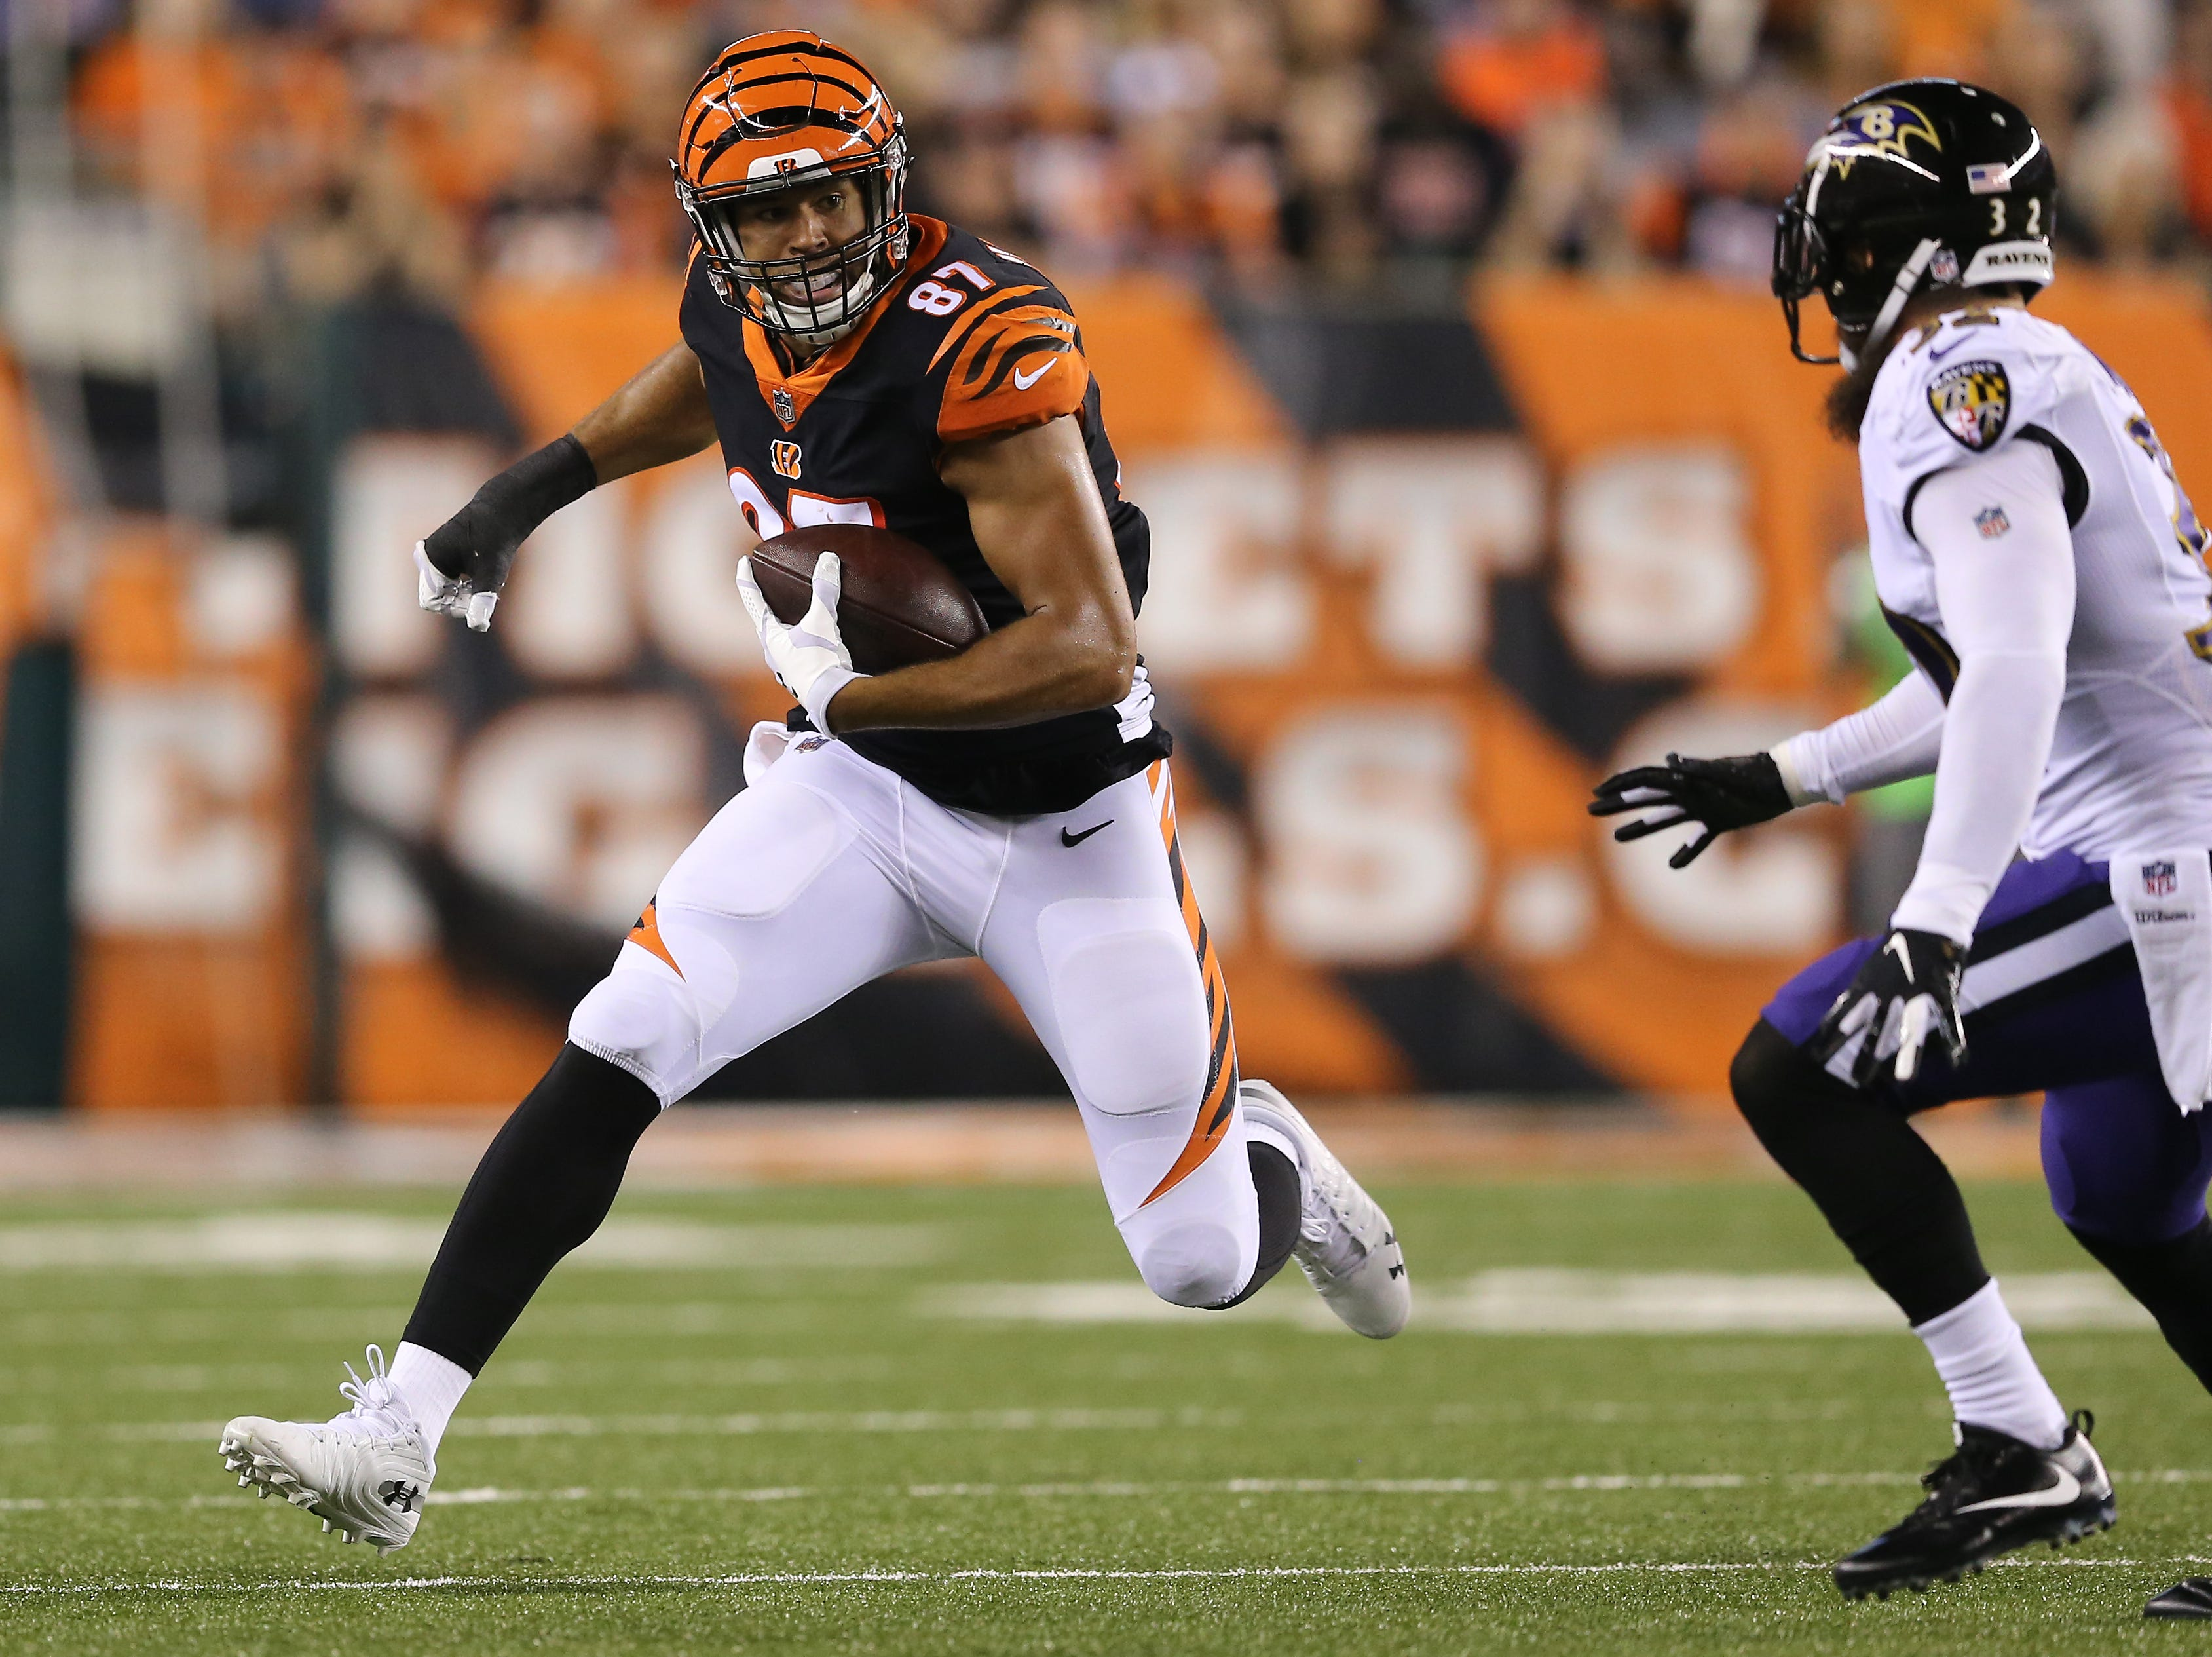 Cincinnati Bengals tight end C.J. Uzomah (87) runs downfield after a catch in the first quarter during the Week 2 NFL football game between the Baltimore Ravens and the Cincinnati Bengals, Thursday, Sept. 13, 2018, Paul Brown Stadium in Cincinnati.